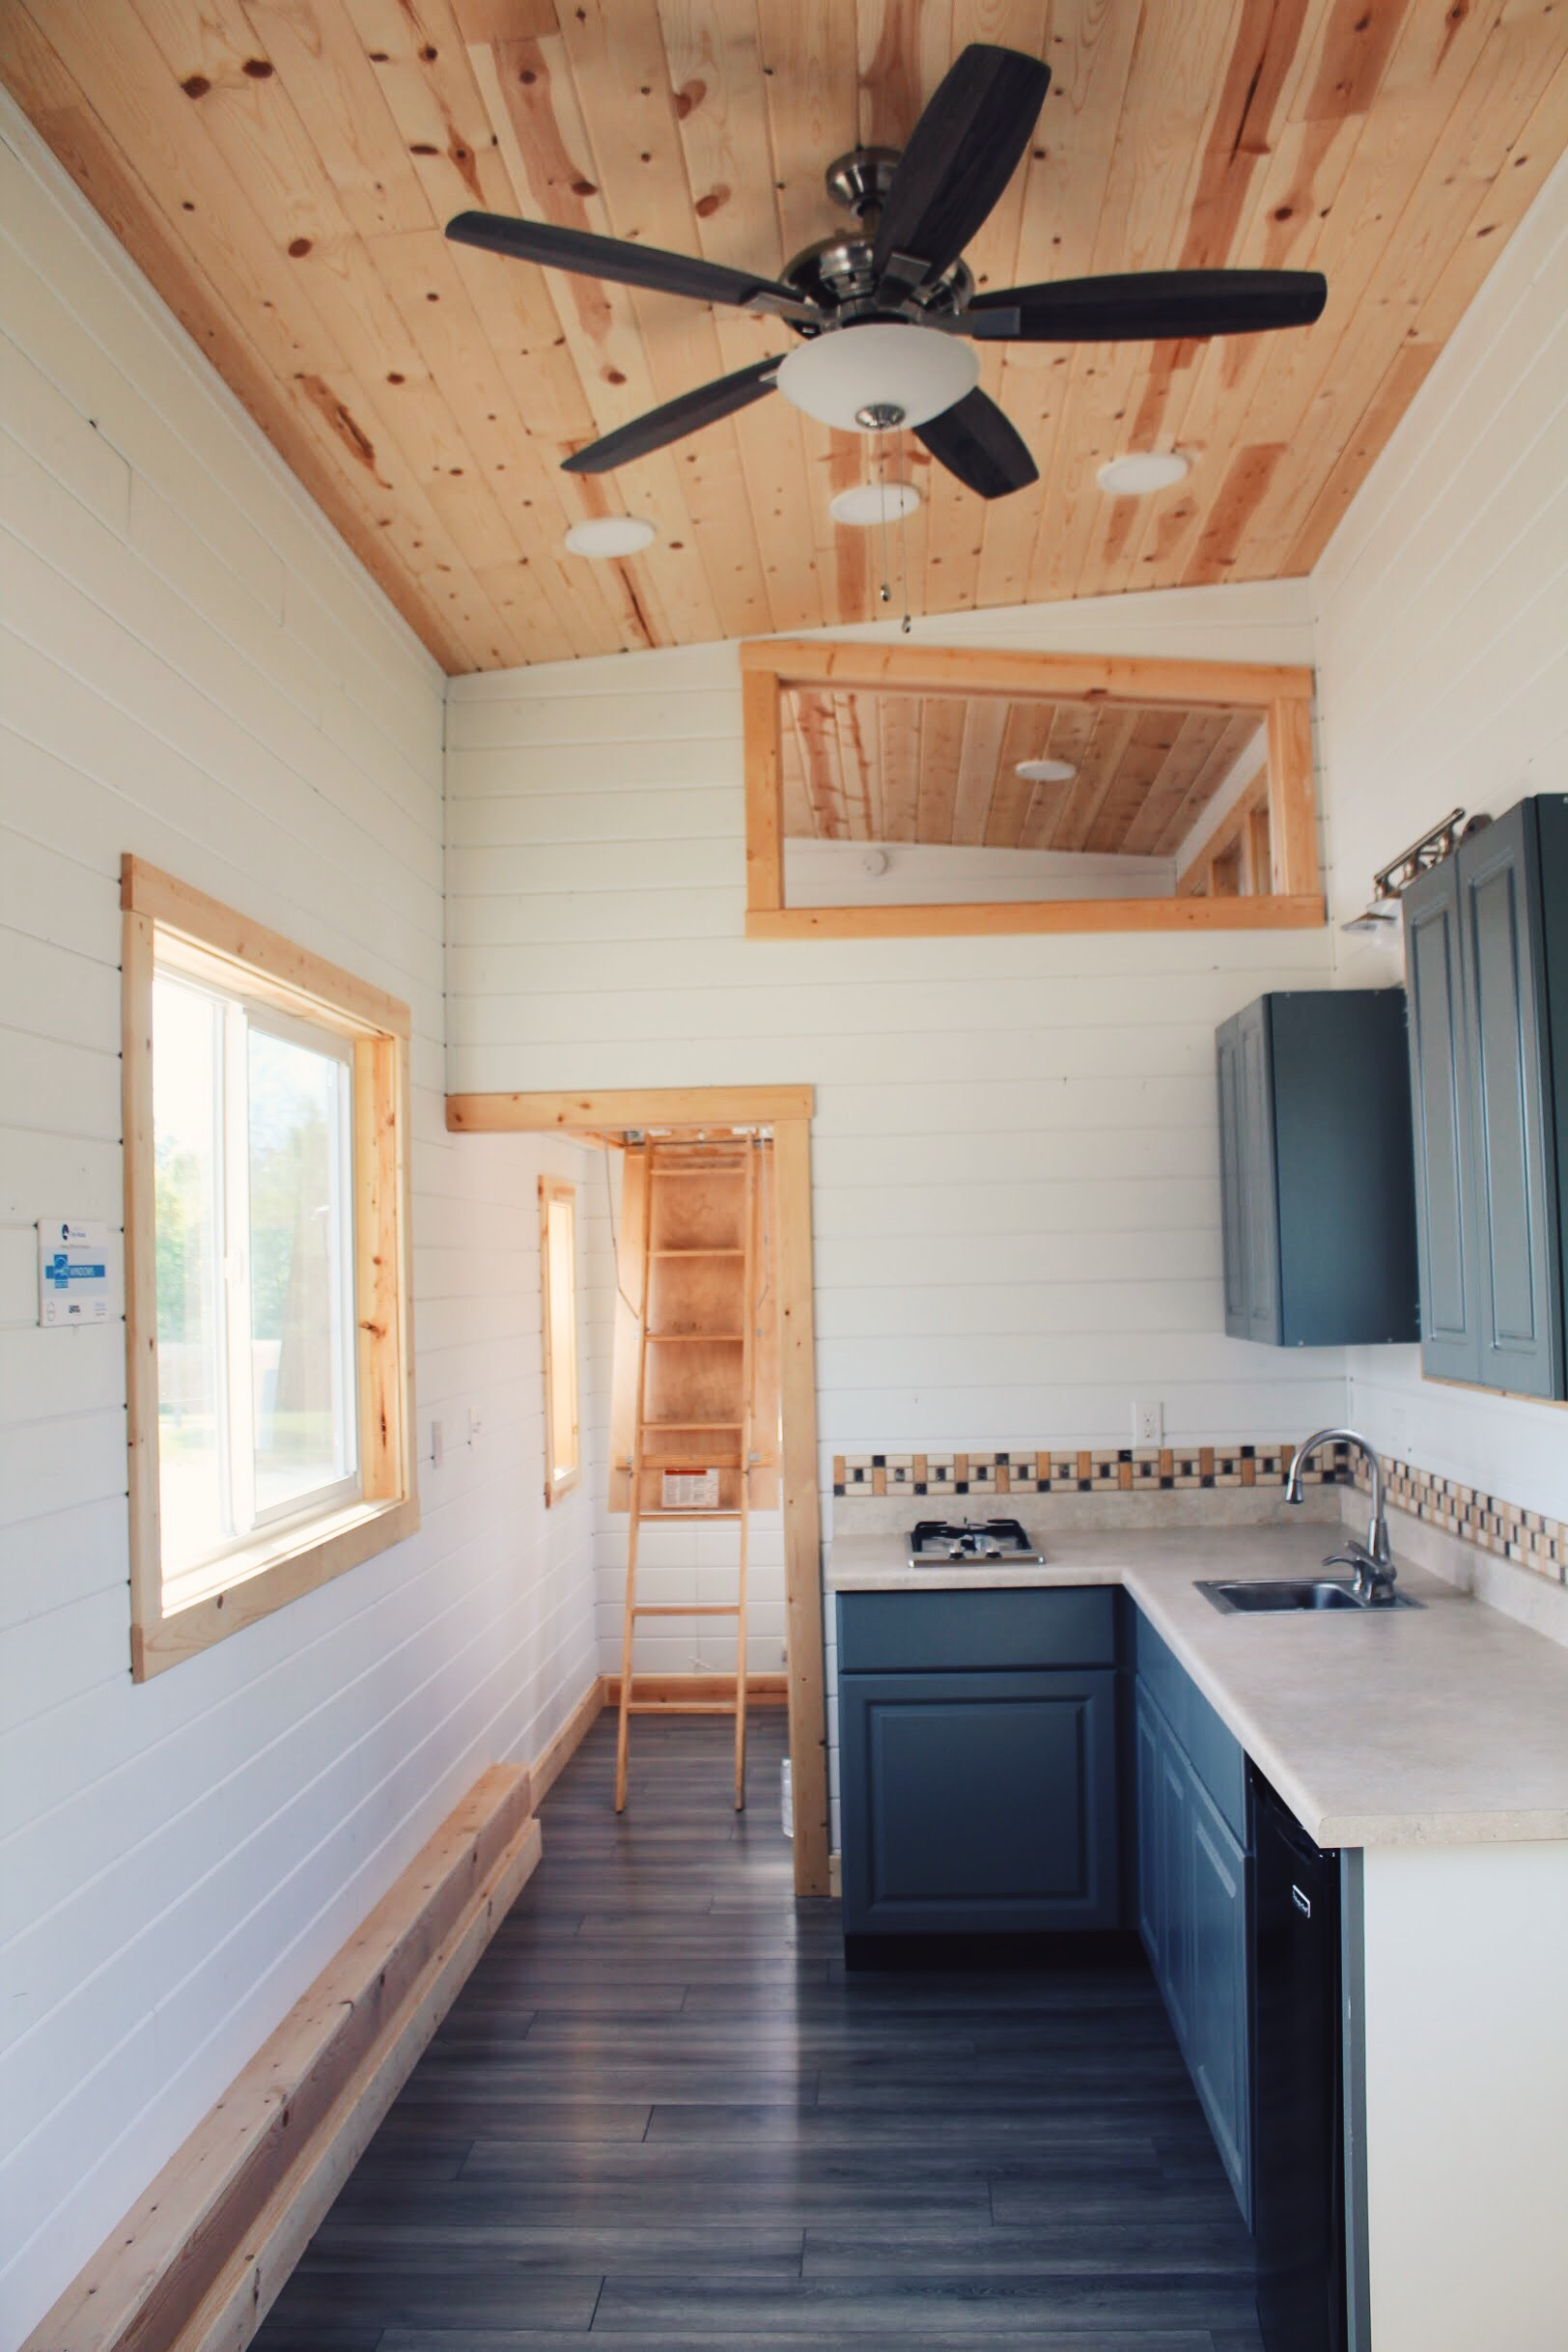 Project Tiny House 2018 - Final - 8.jpg